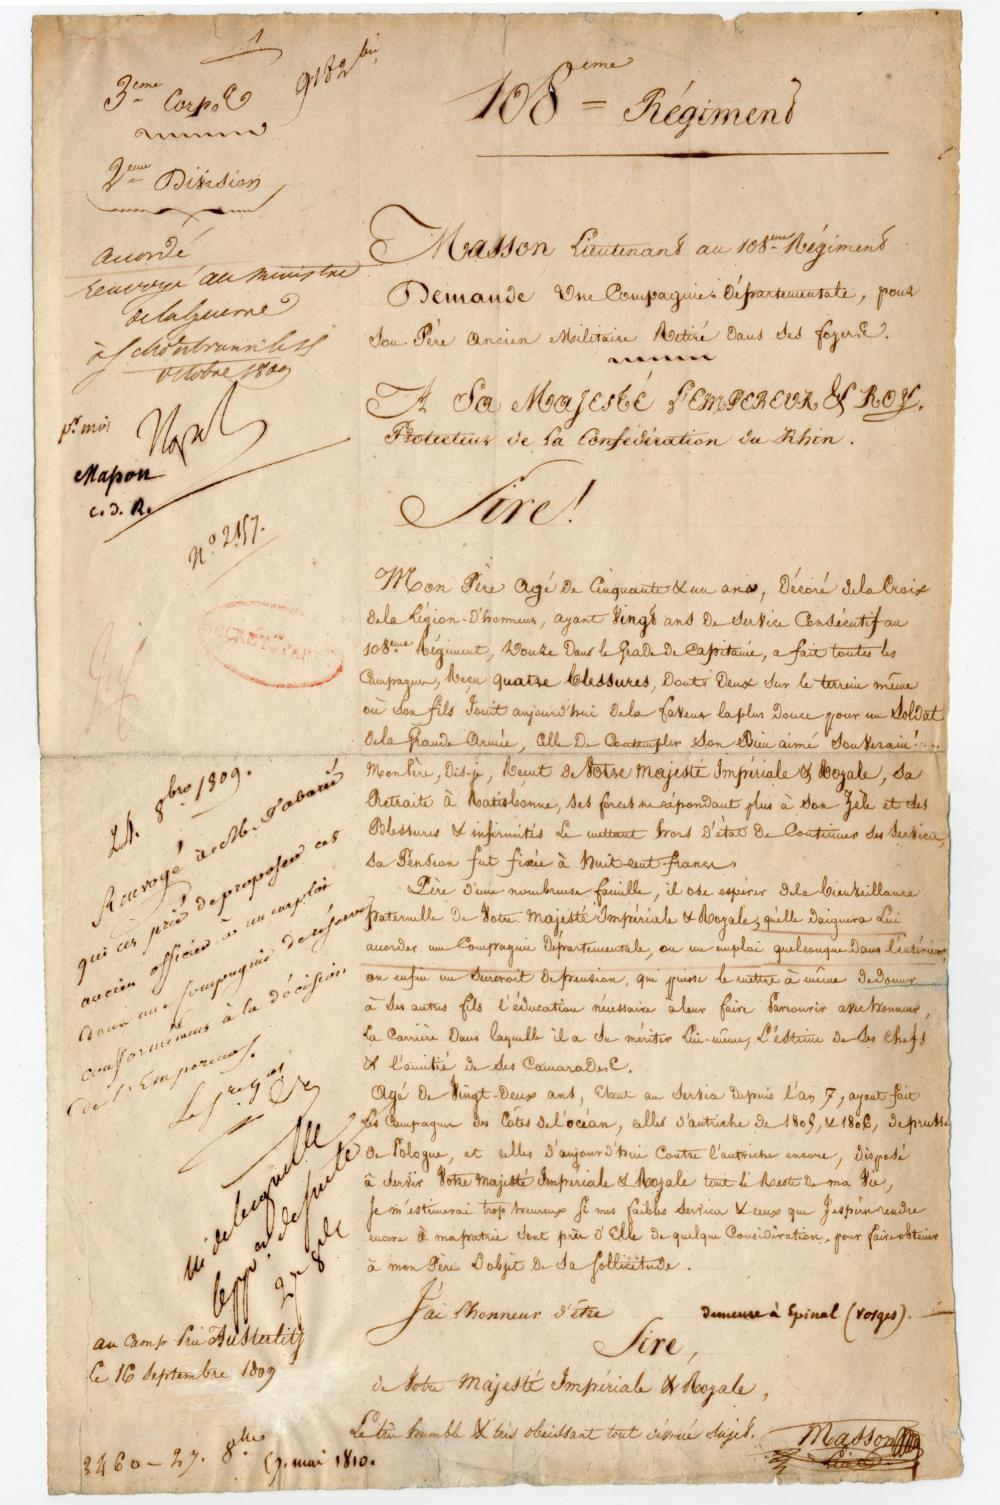 Napoleon Approves Sons Request For his 4x Battle Wounded Legion of Honor-Awarded Father. A Lovely Letter!